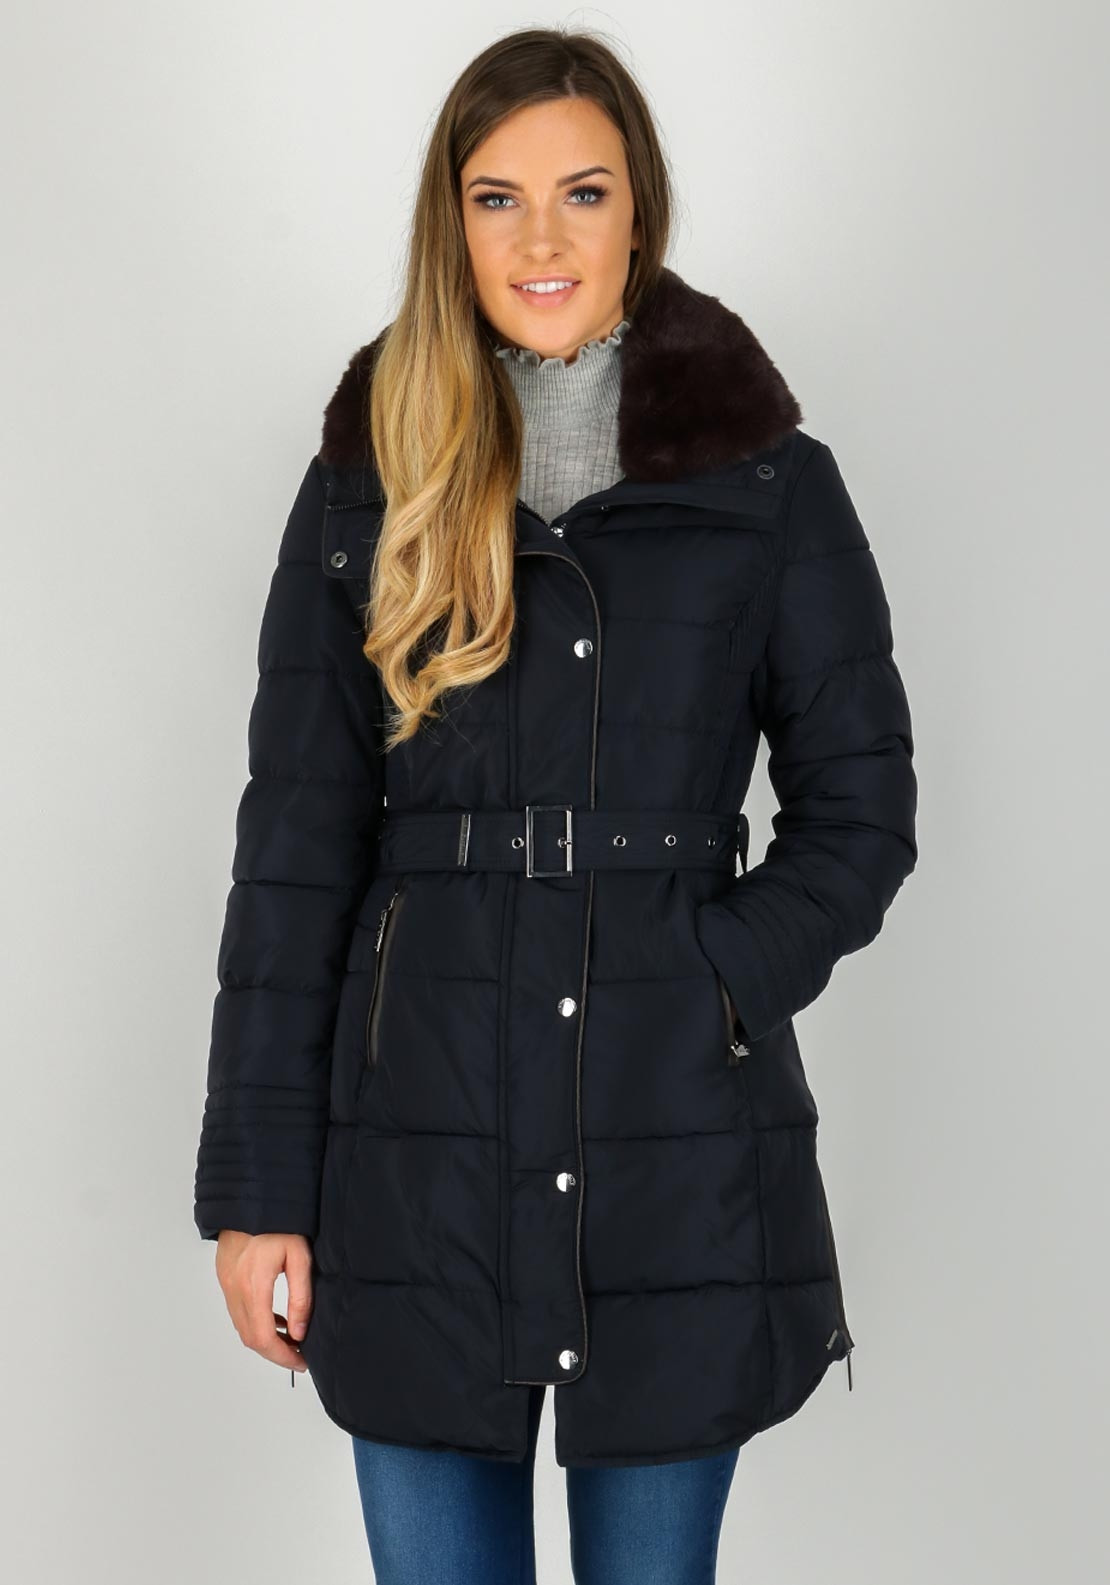 Rino & Pelle Blush Faux Fur Trim Quilted Coat, Navy